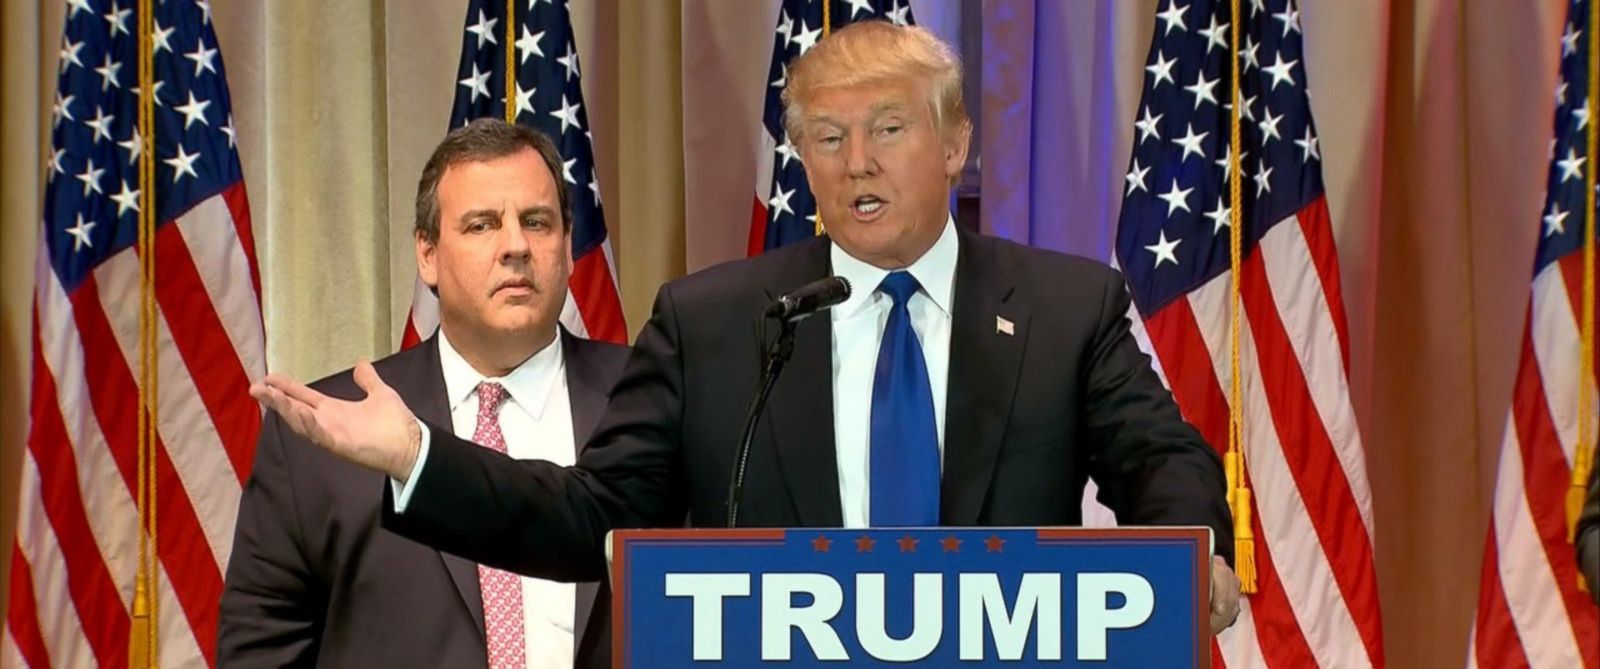 PHOTO: Donald Trump speaks at a news conference, March 1, 2016.